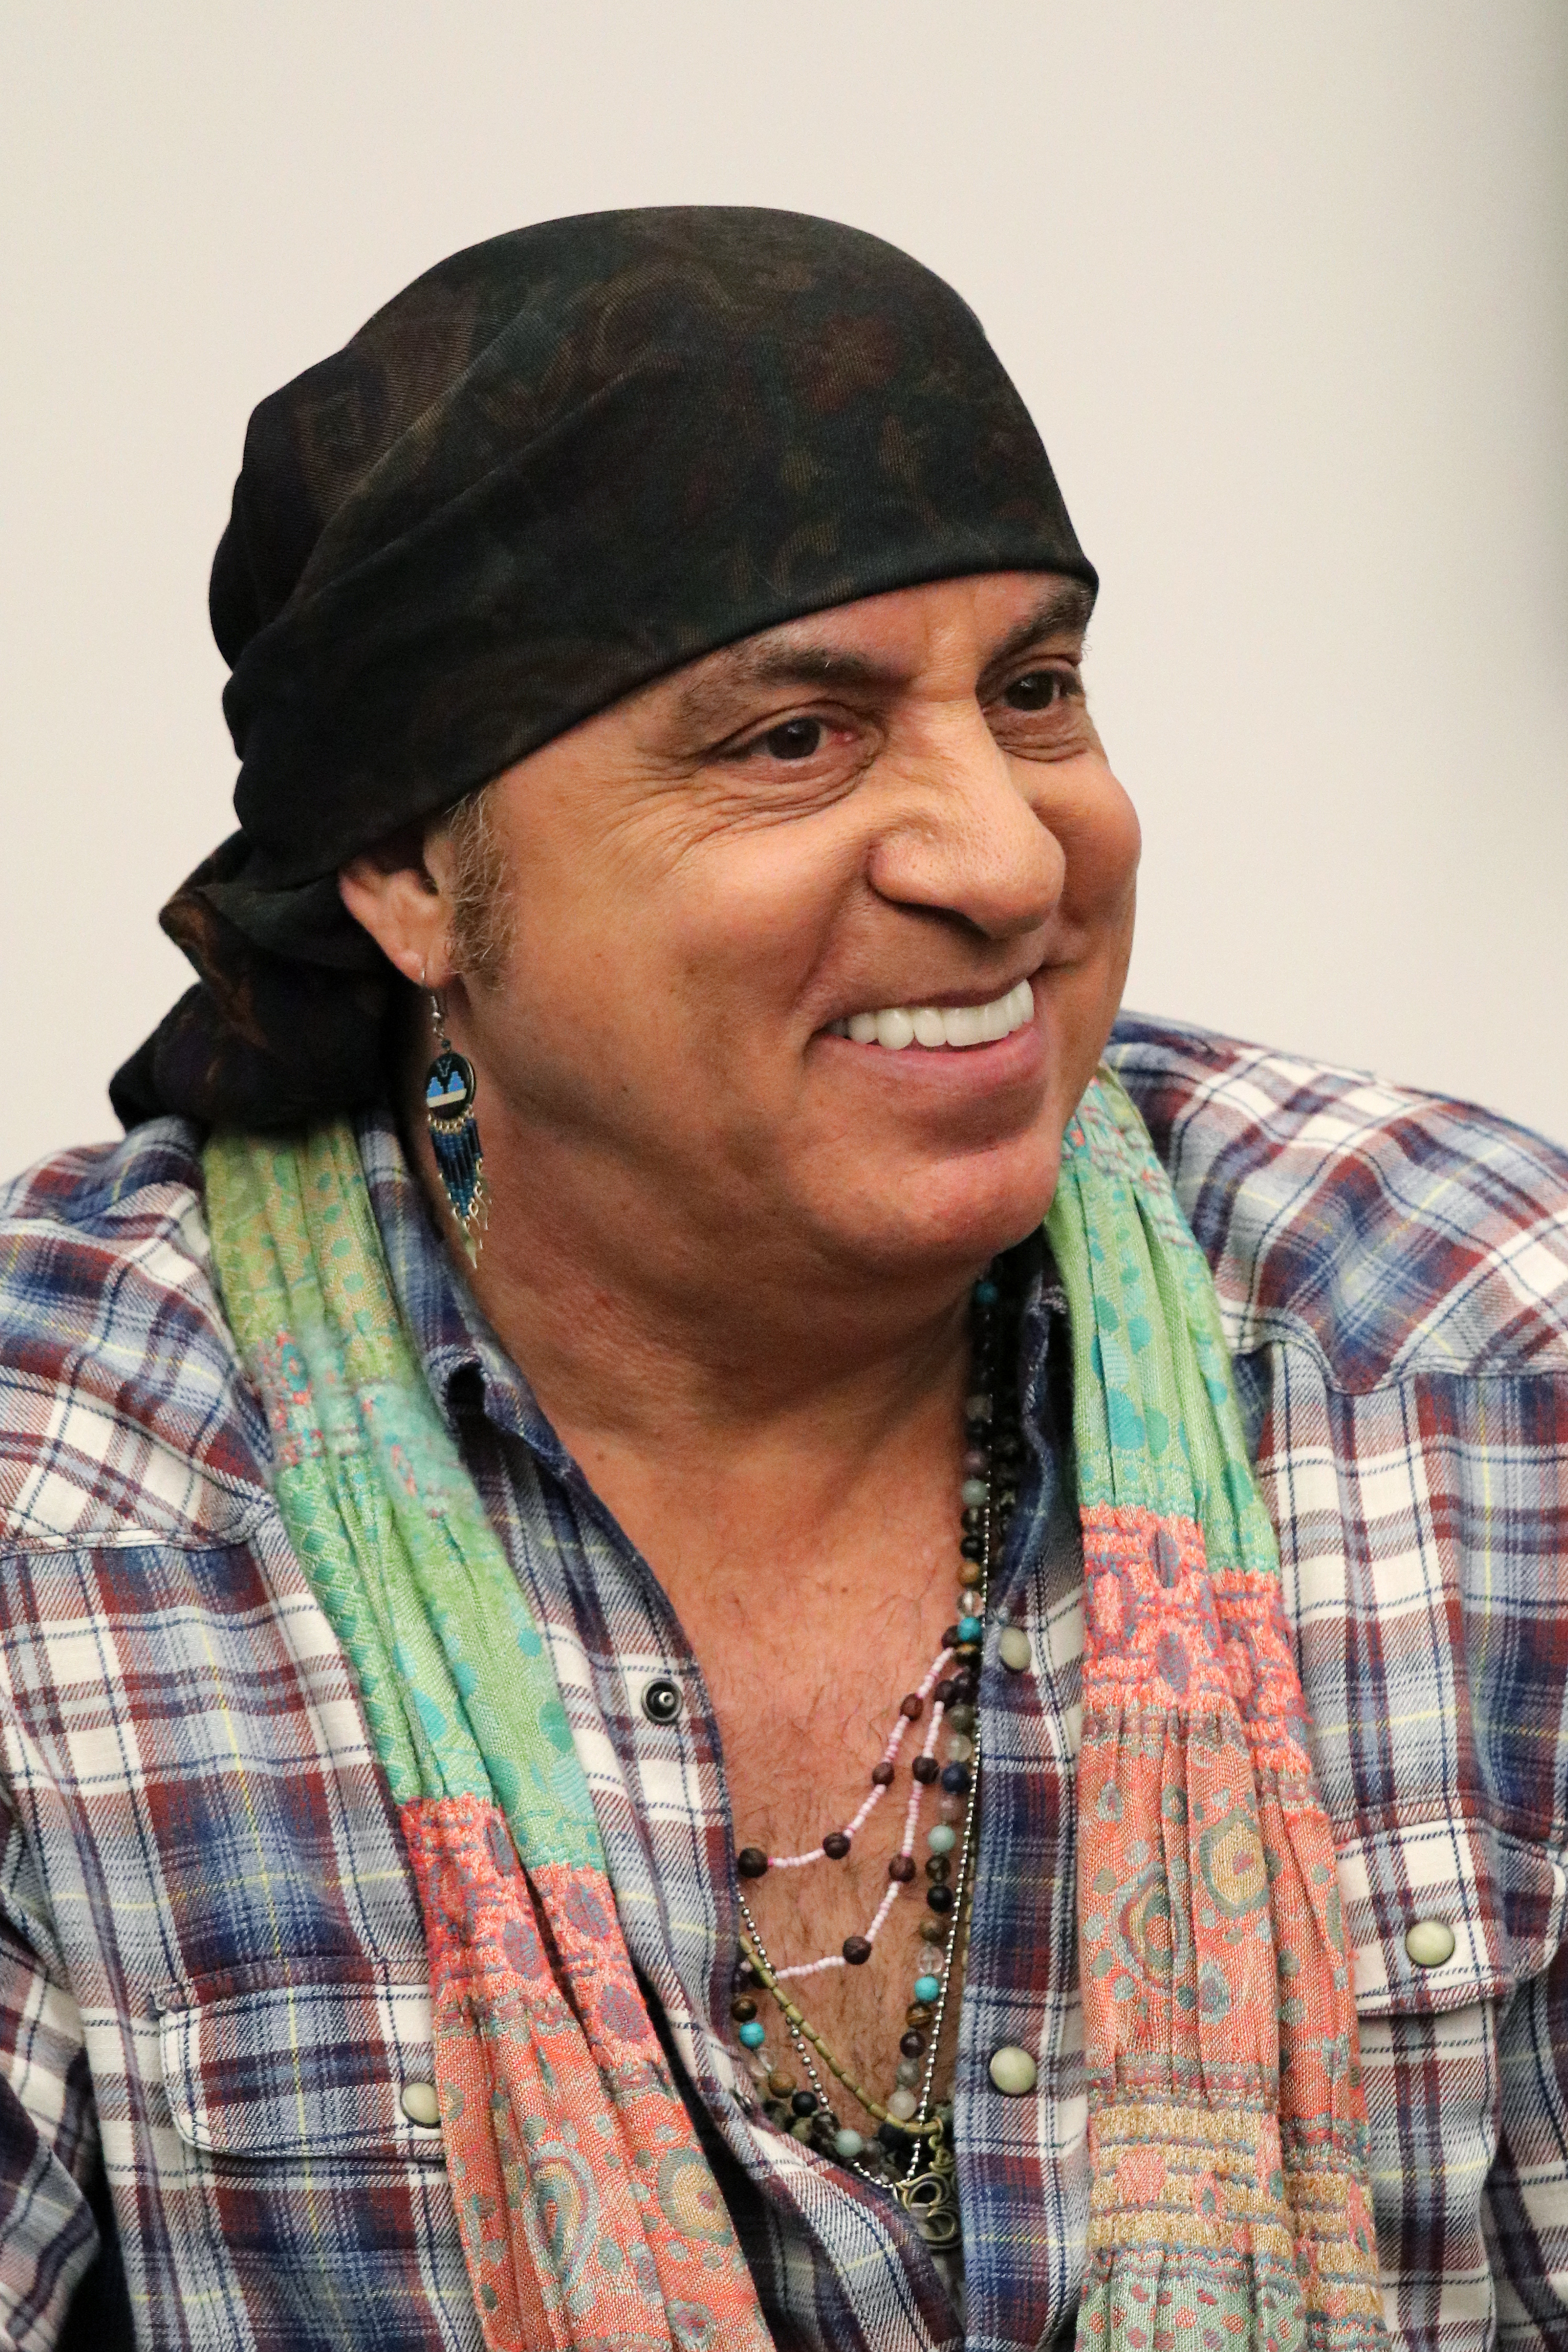 The 67-year old son of father William Van Zandt and mother  Mary Lento Steven Van Zandt in 2018 photo. Steven Van Zandt earned a  million dollar salary - leaving the net worth at 80 million in 2018